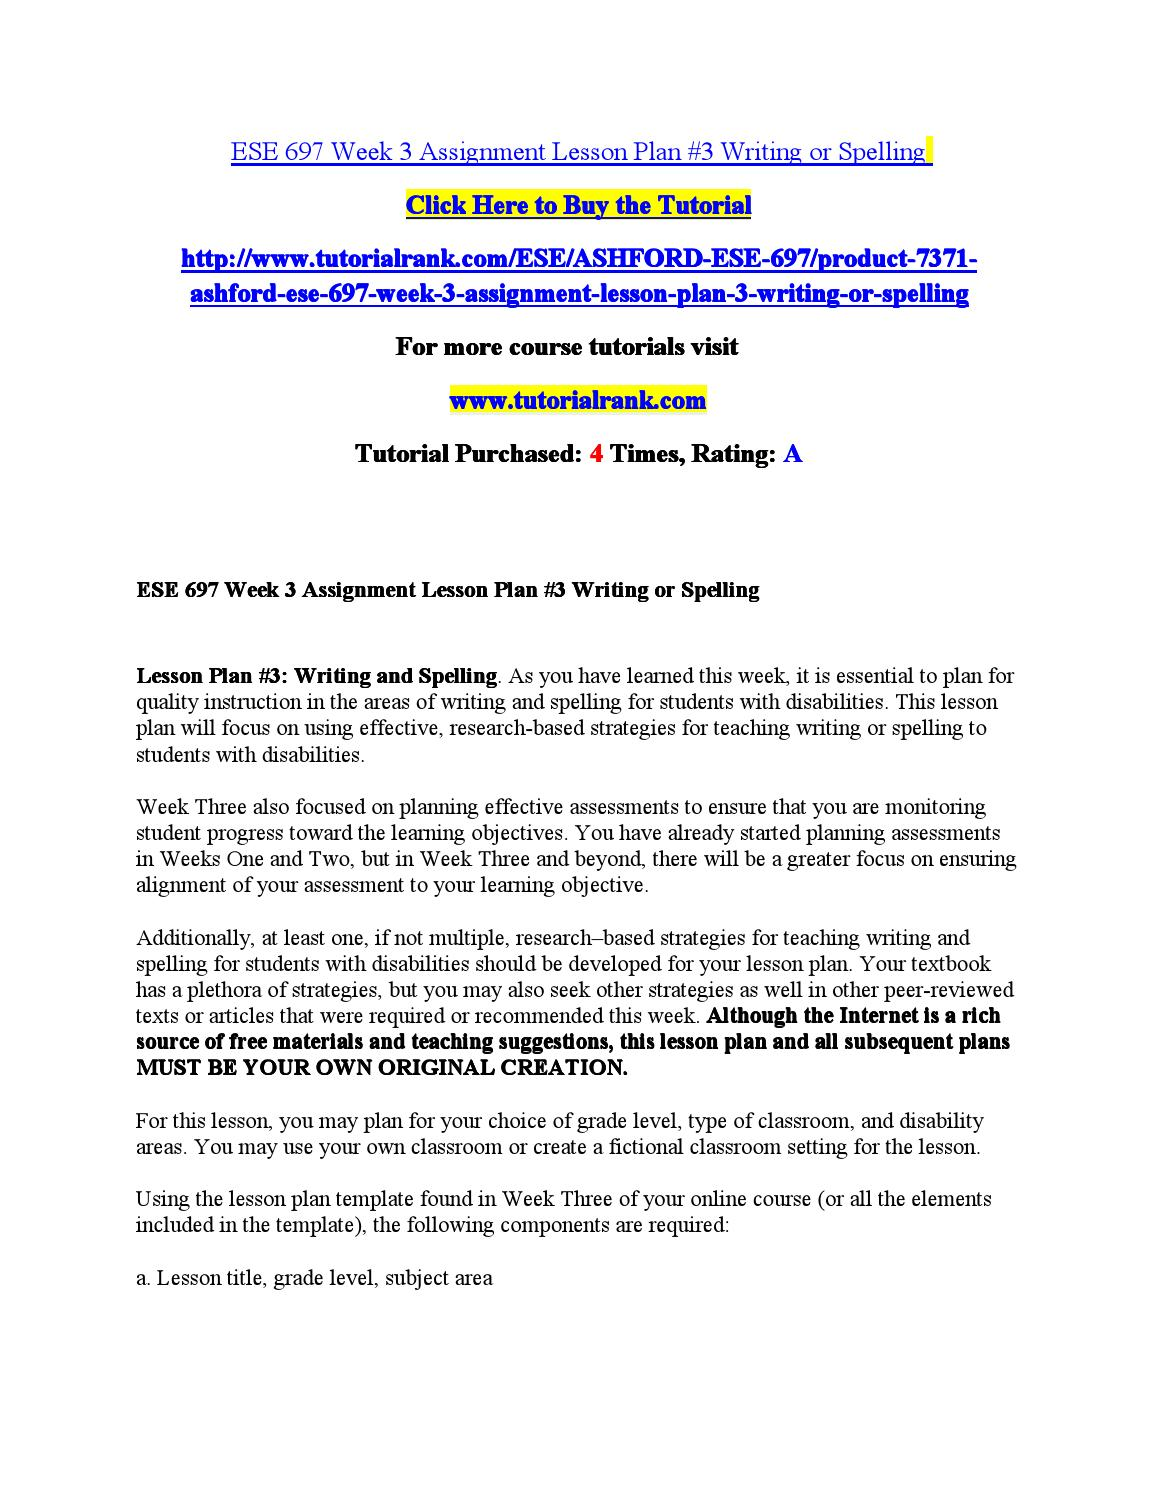 ese 697 week 4 dq 2 Tutorialrank is a online tutorial store we provides ashford ese 697 week 4 dq 2 designing a mini-lesson in mathematics.